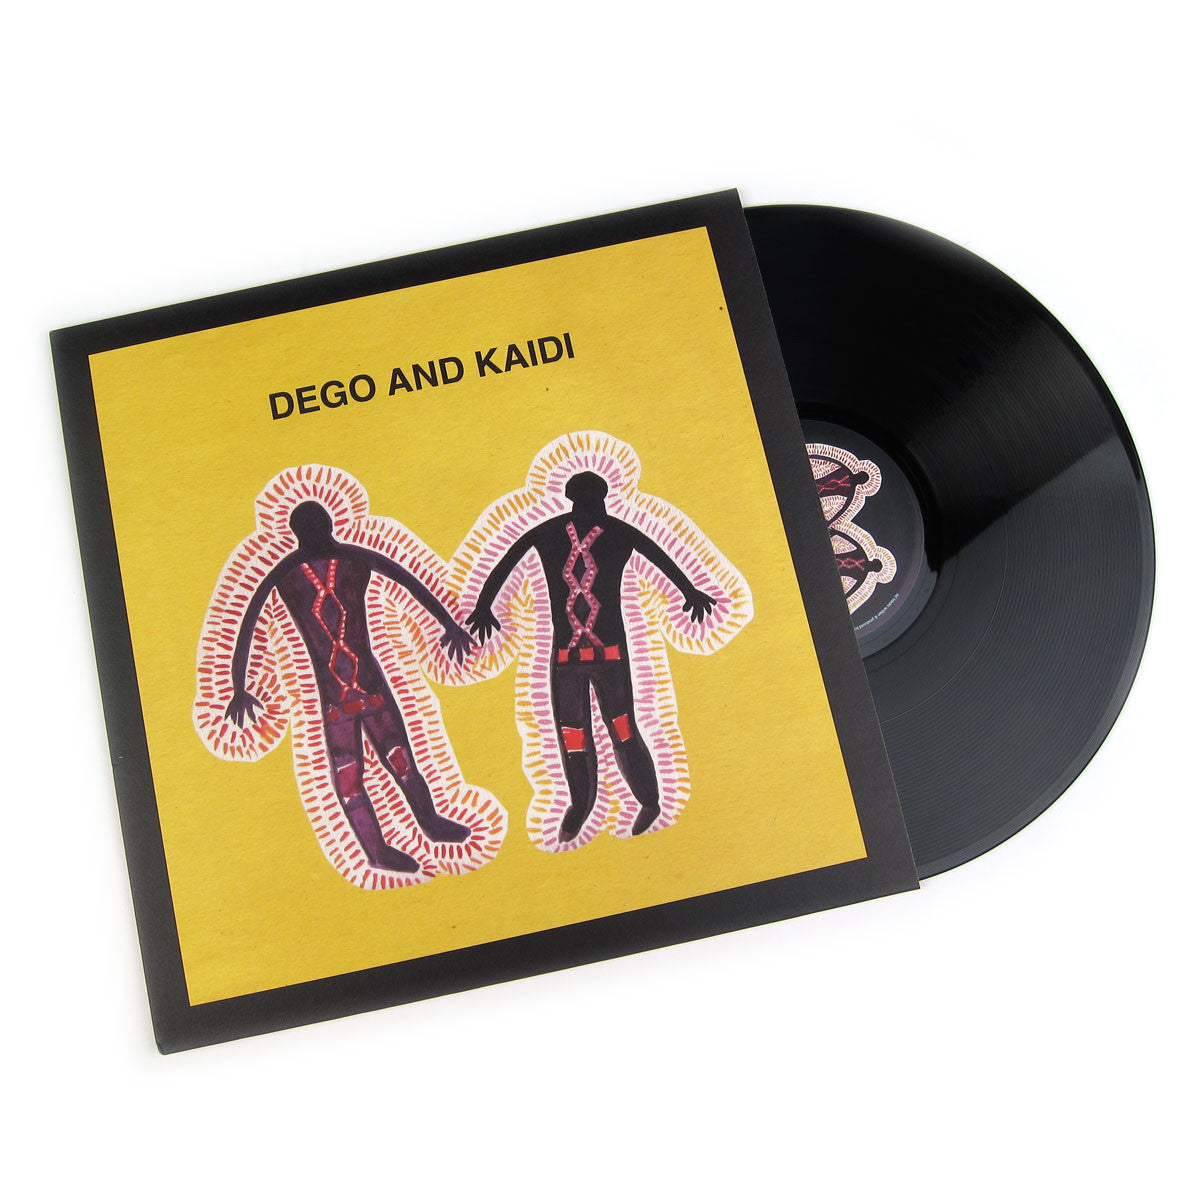 Dego & Kaidi: EP #2 (4Hero, Bugz In The Attic) Vinyl 12""